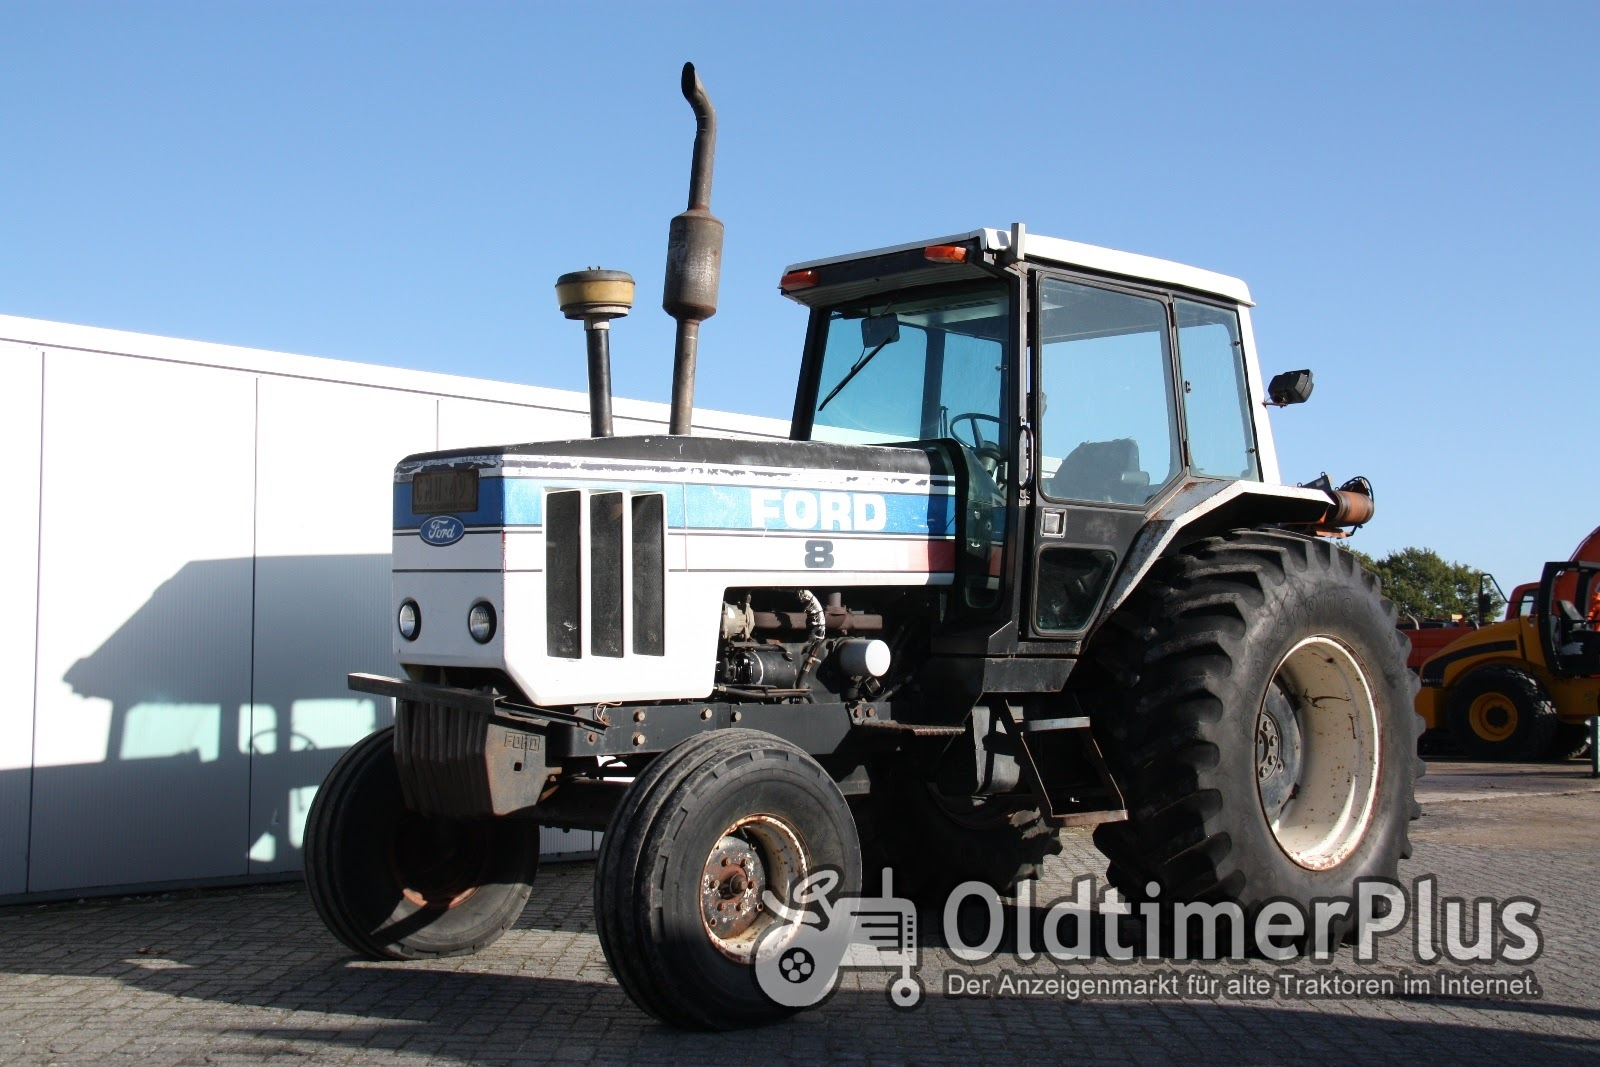 ford retro for review com sale thatsfarming machinery news tractors